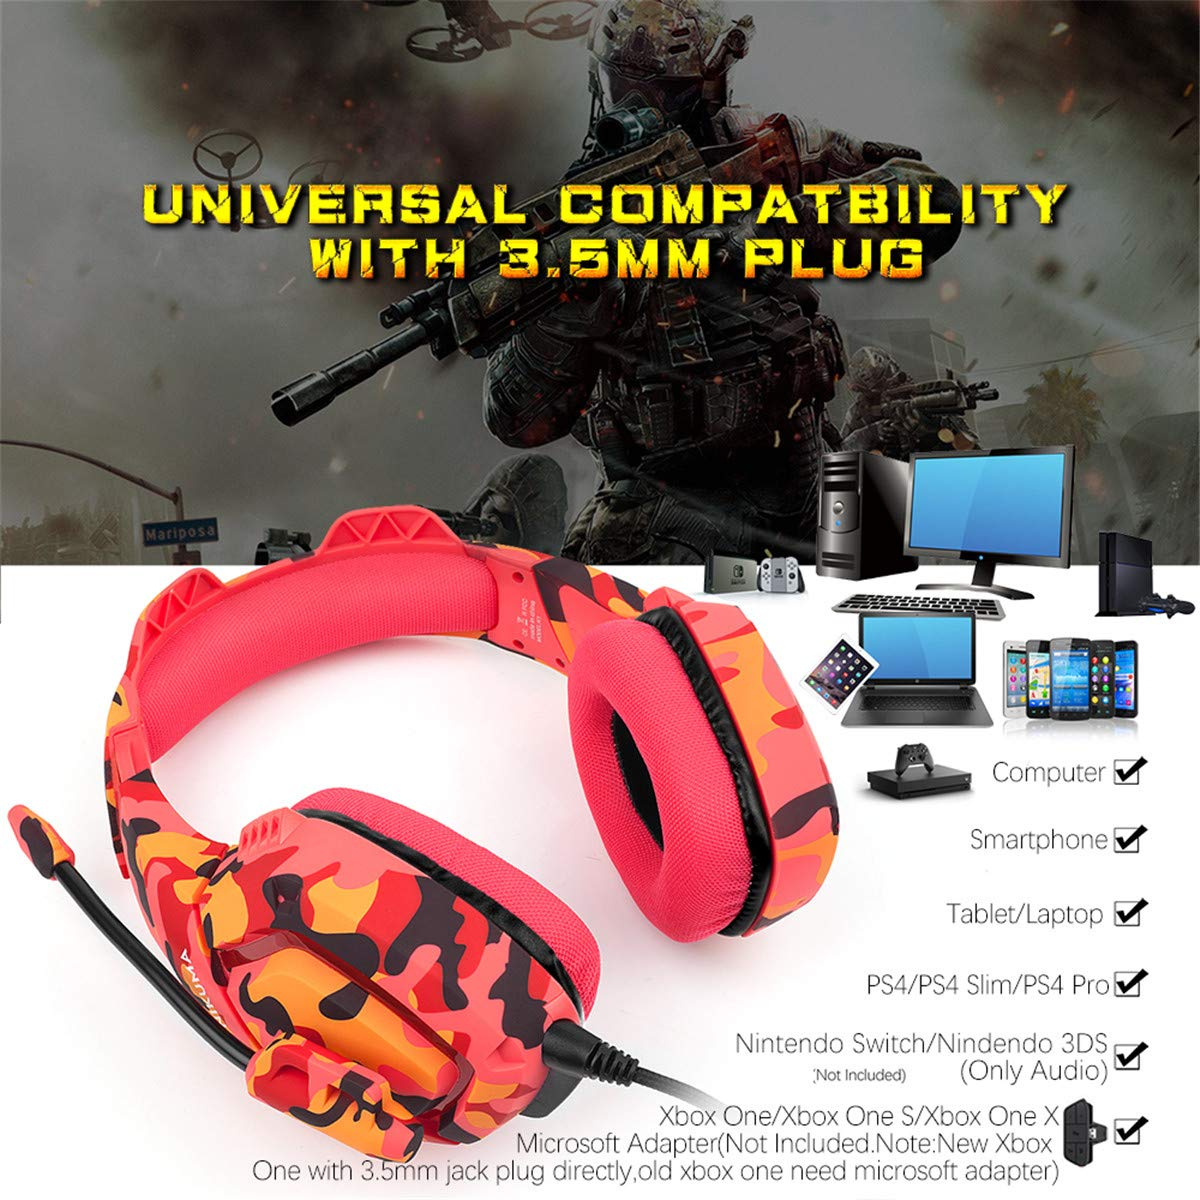 Gaming Headset for PS4,Xbox One,Nintendo Switch Only Audio ,ONIKUMA PC Stereo Noise Cancelling Over Ear Headphones with Mic, Compatible with Playstation 4,Laptop,Tablet,Smart Phone Red Camo